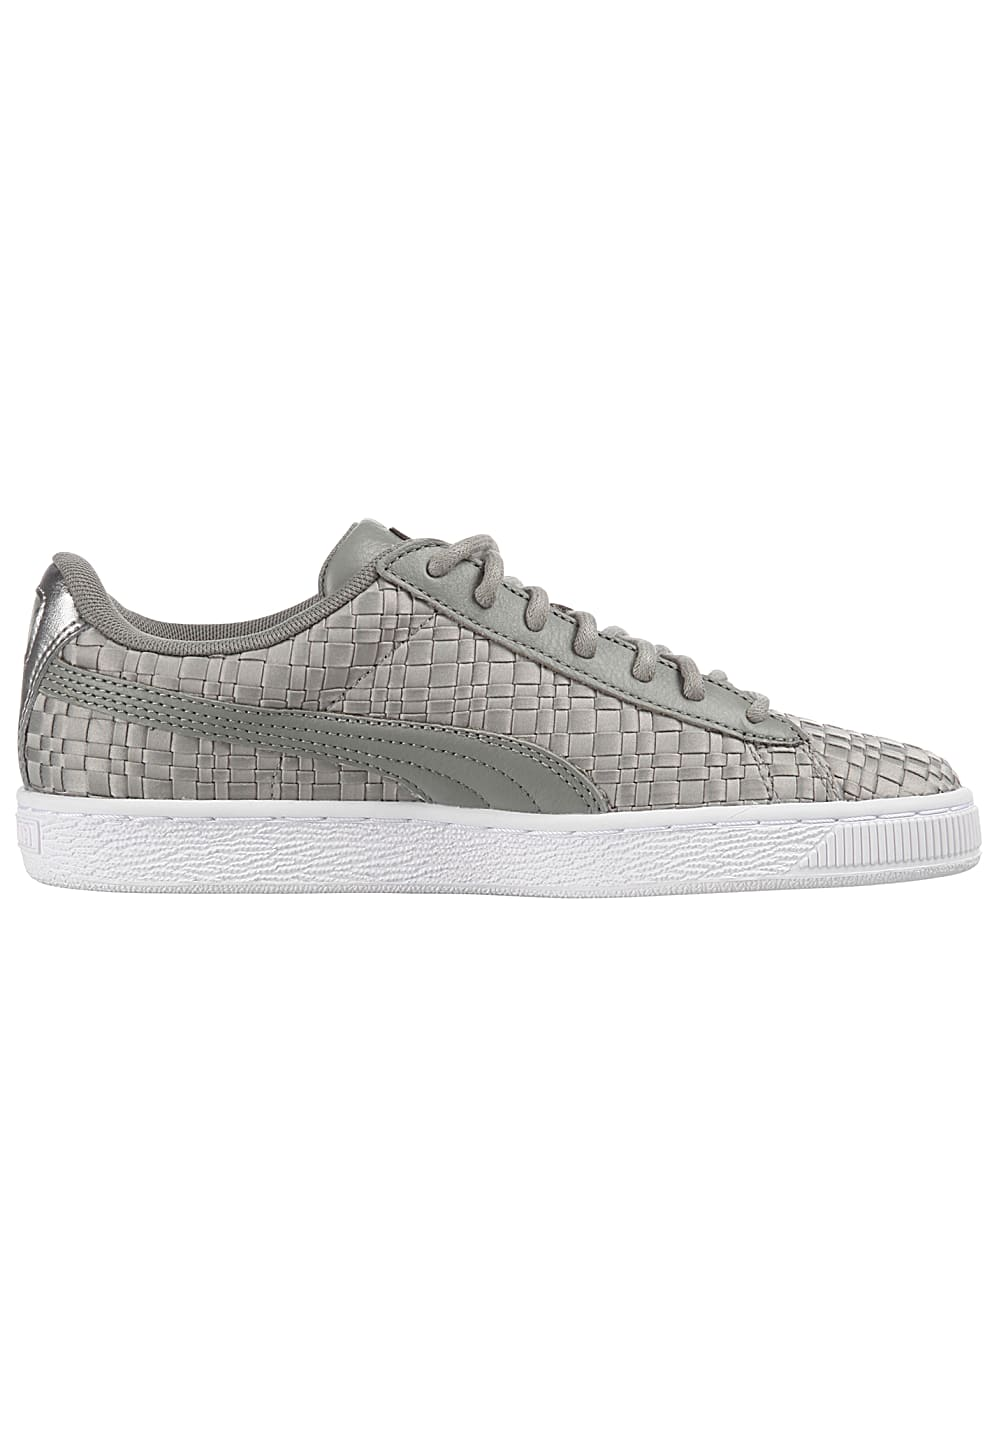 Femme Basket Sports Planet Satin Pour Puma Baskets Gris Pointe En 8OXnZkN0wP